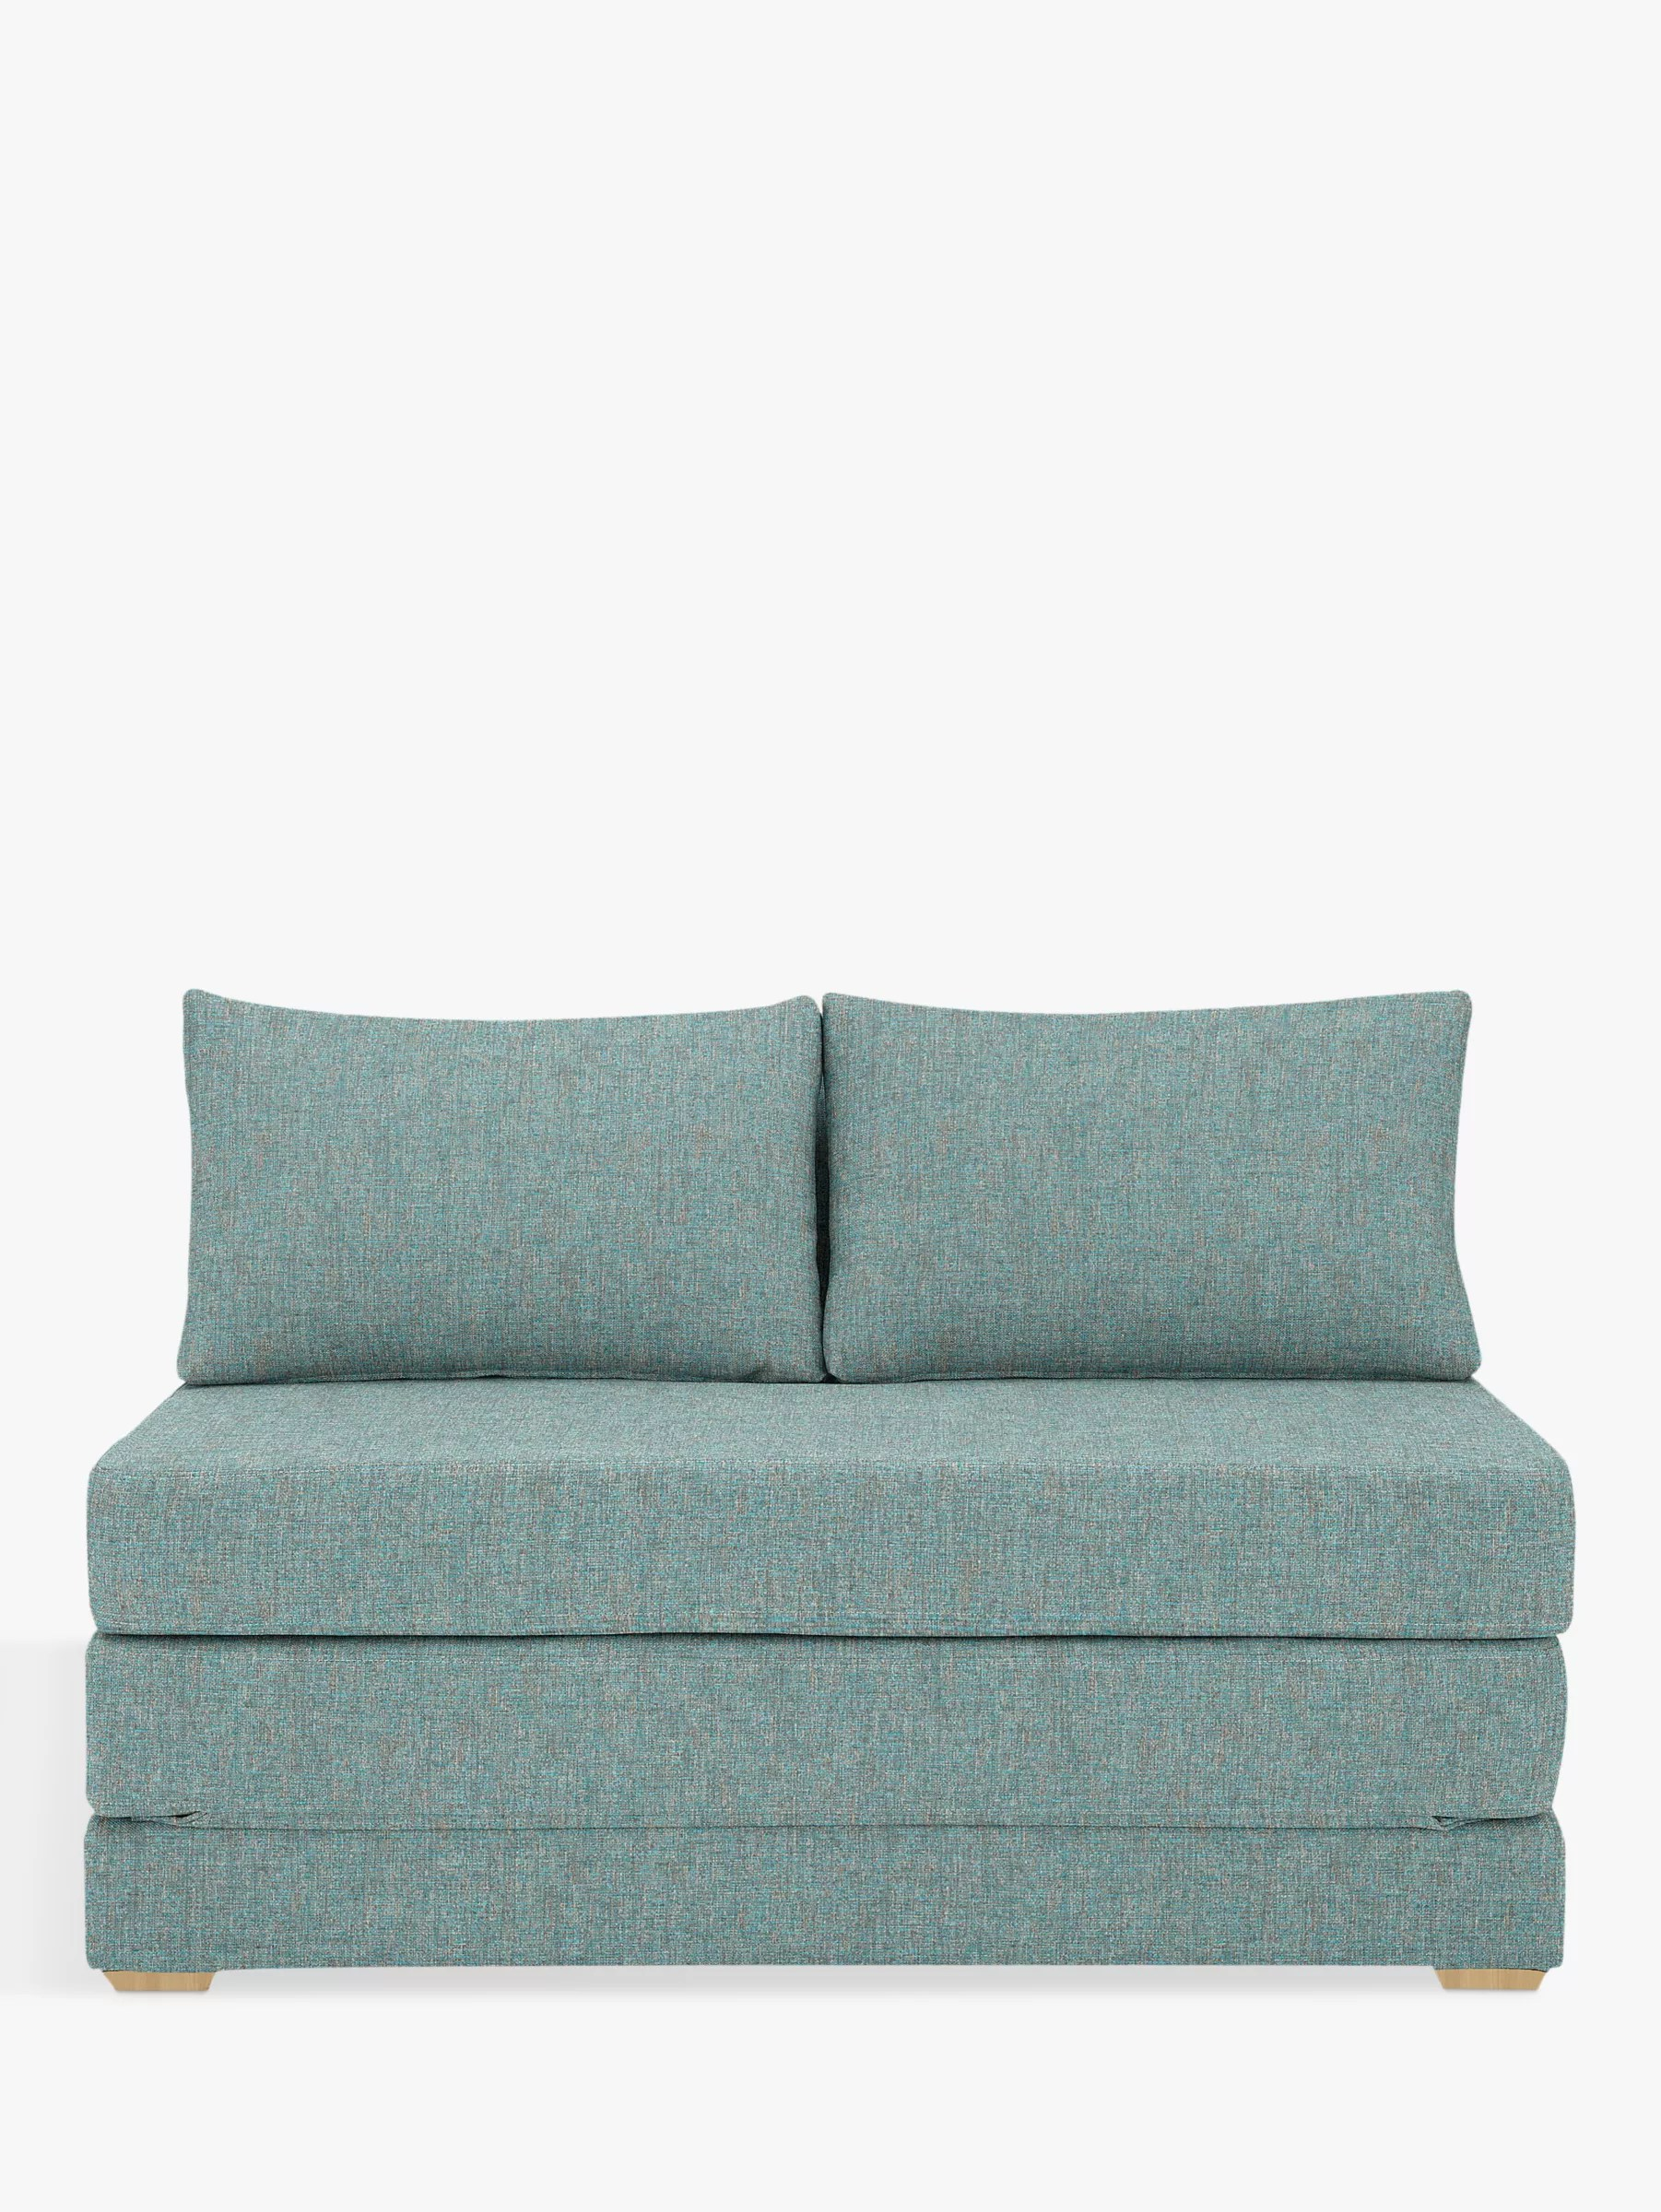 bed and sofa warehouse leeds plastic triangle legs sofas beds john lewis partners house by kip small double light leg riley teal